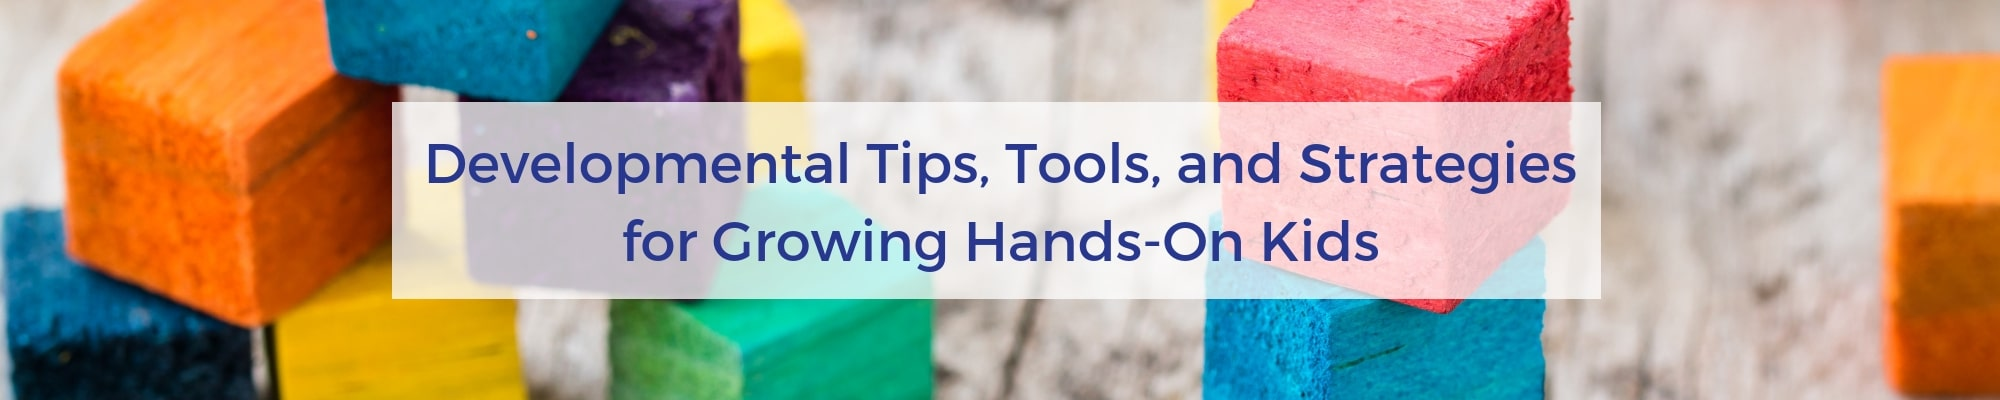 developmental tips. tools. and strategies for growing hands-on kids.